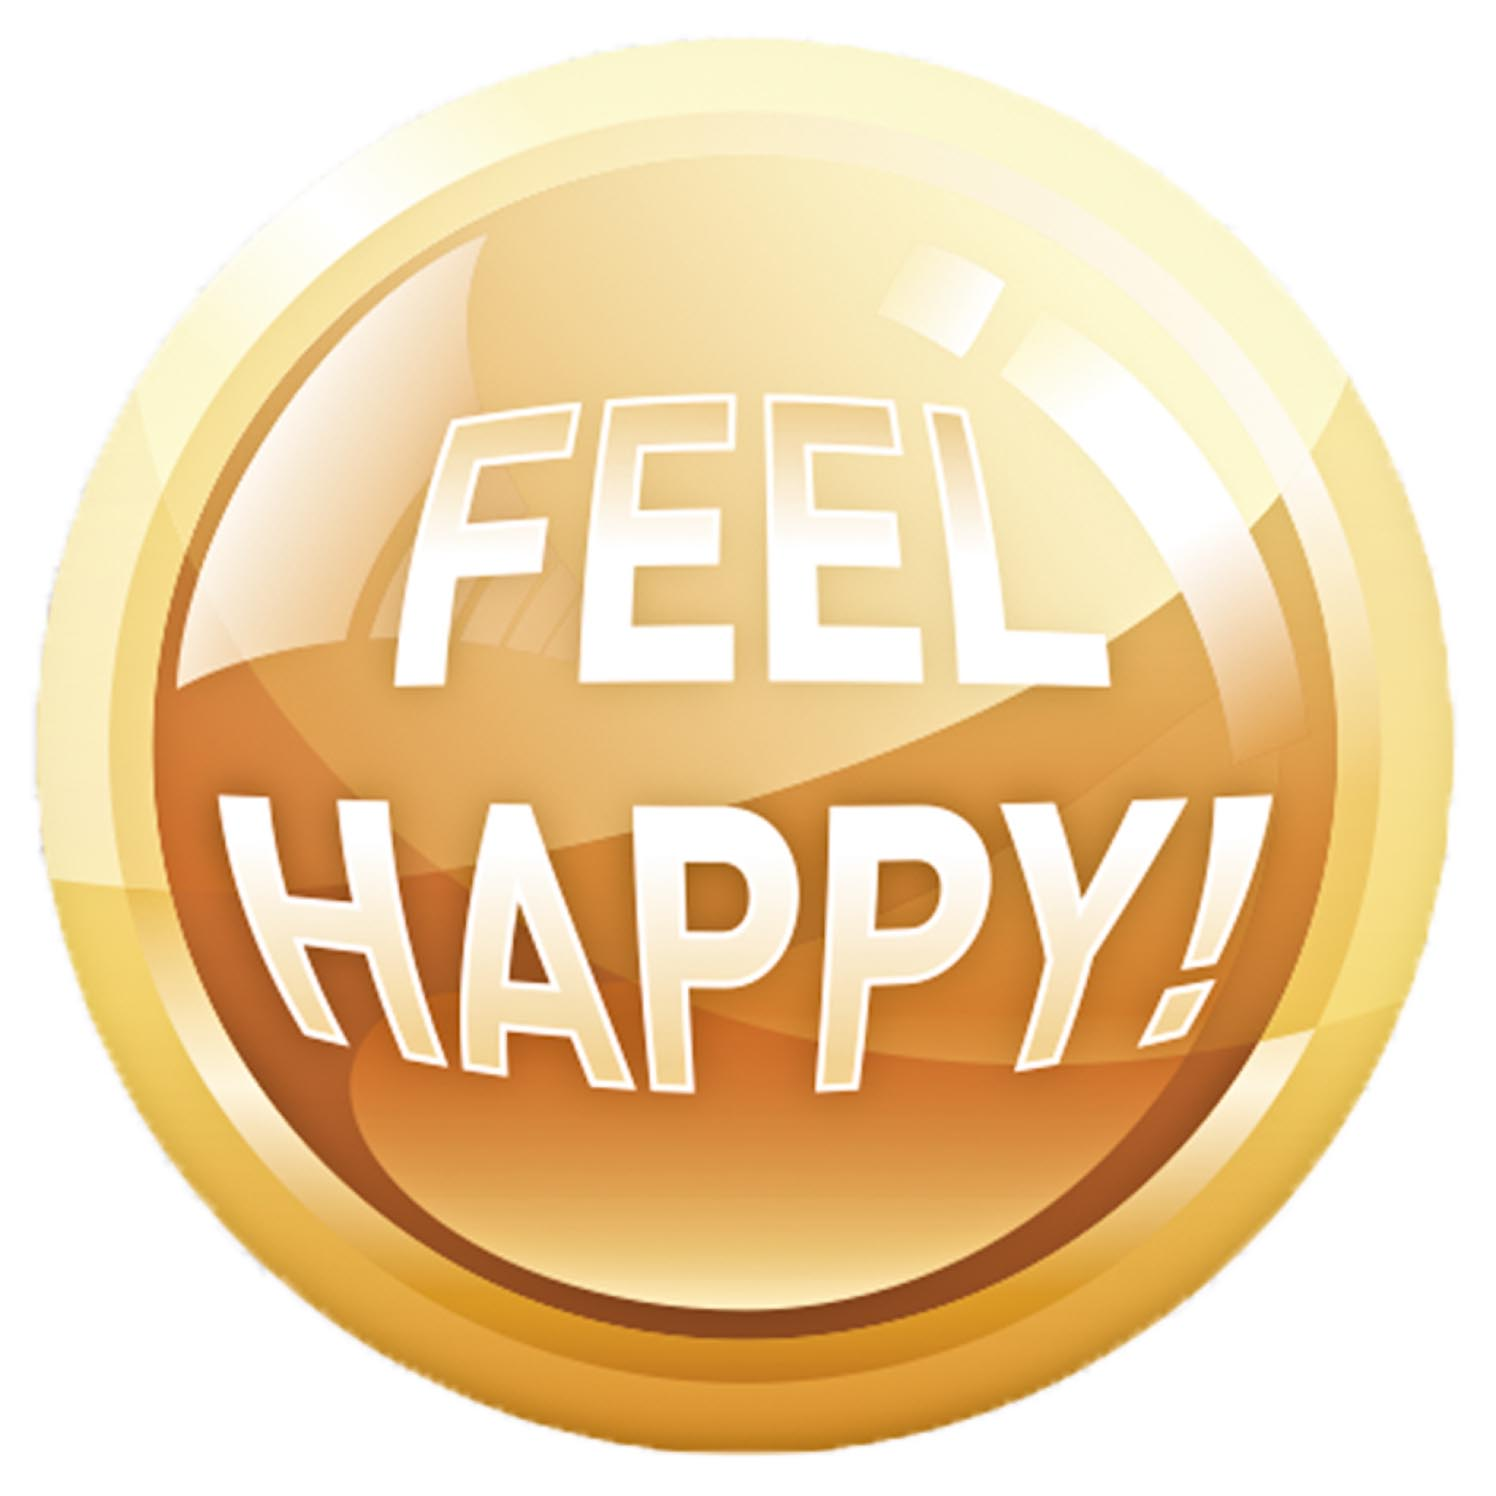 kepplerinstitut.de_1Tagesseminar_NLP_FEEL_HAPPY_BUTTON